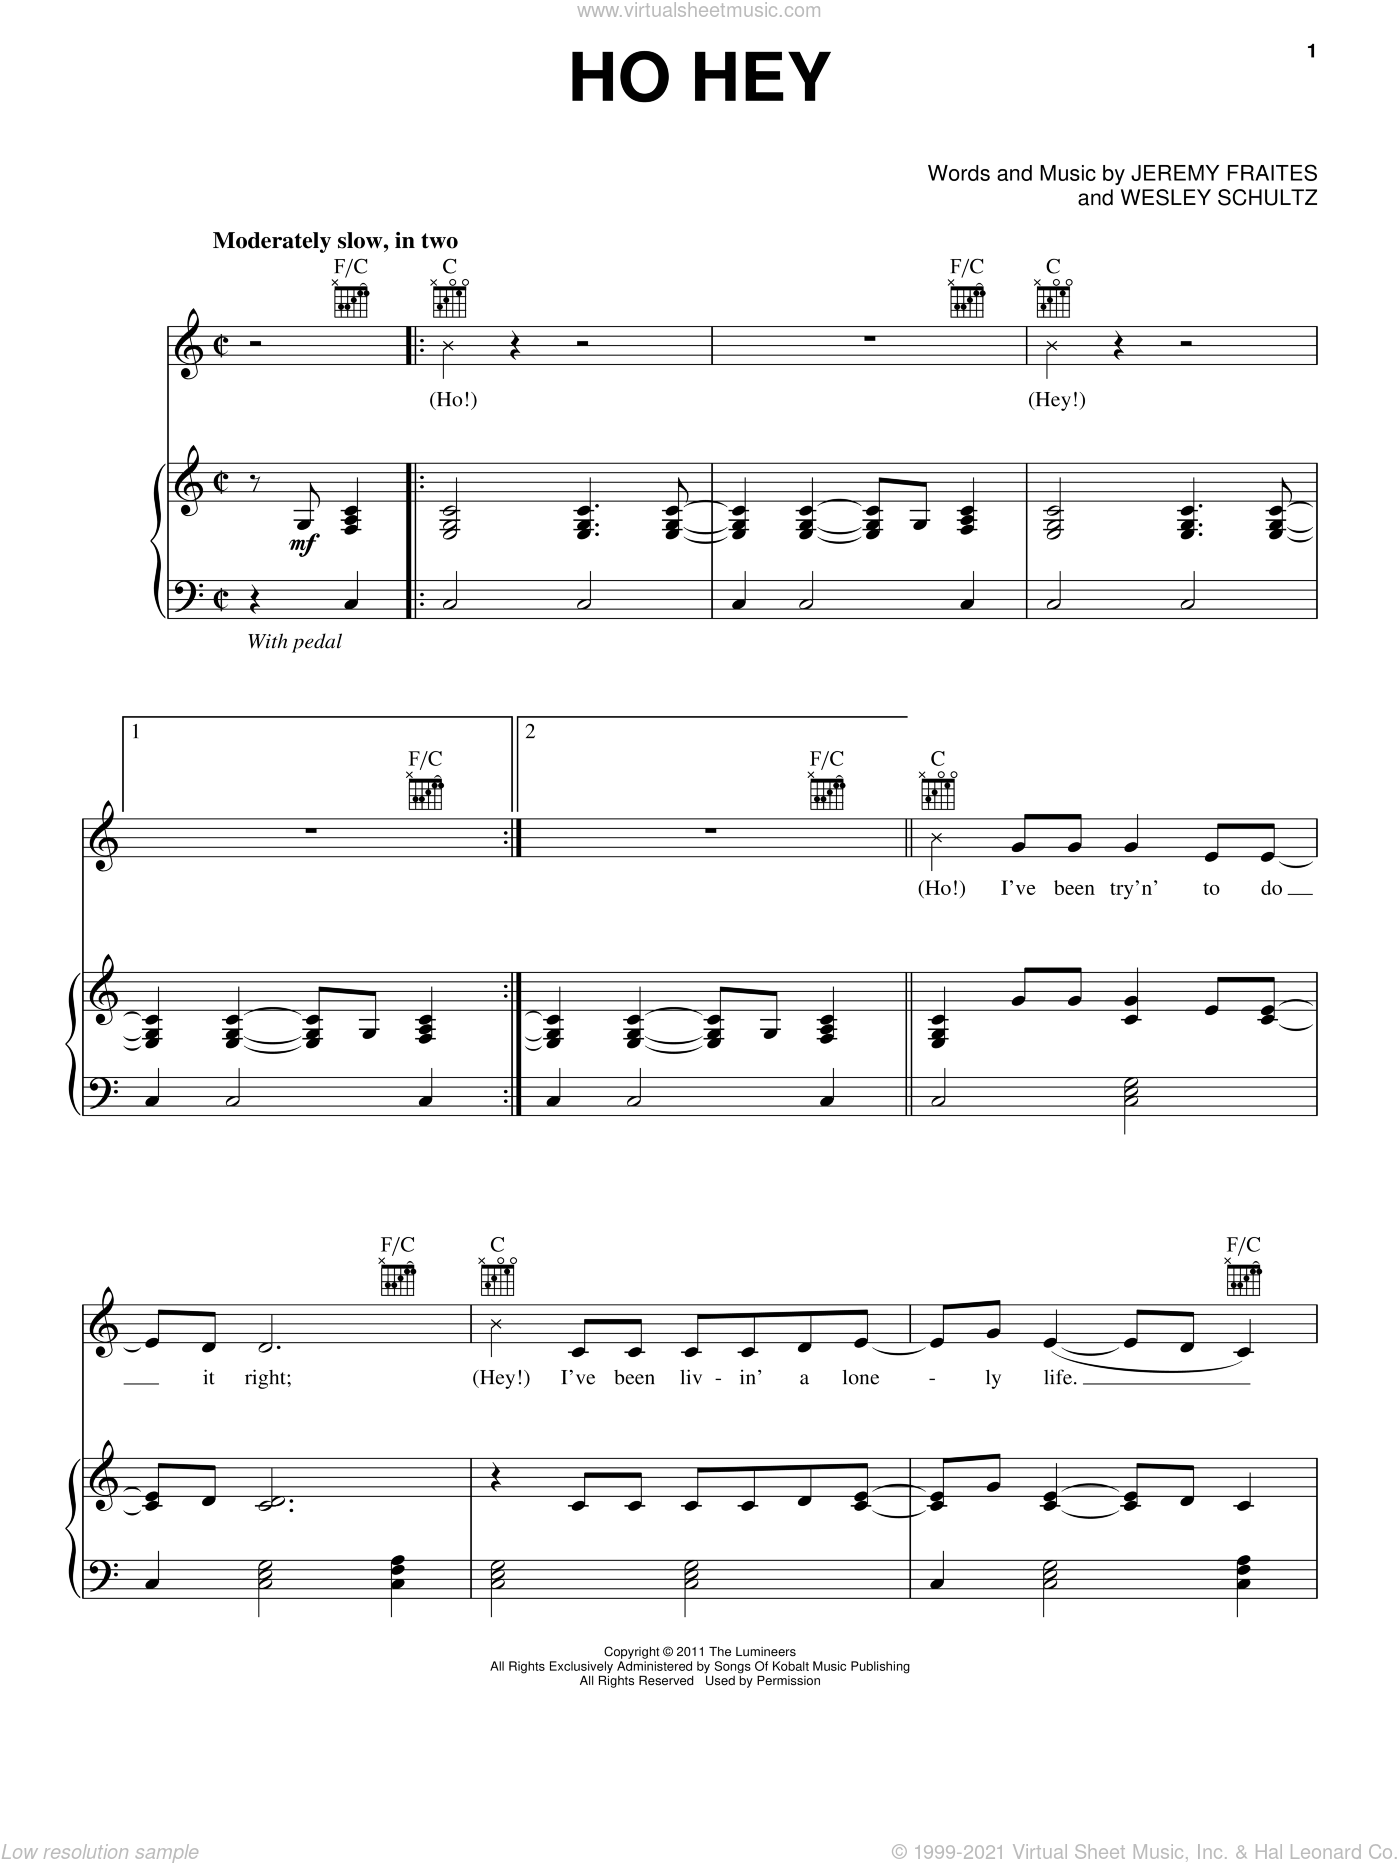 Ho Hey sheet music for voice, piano or guitar by Wesley Schultz